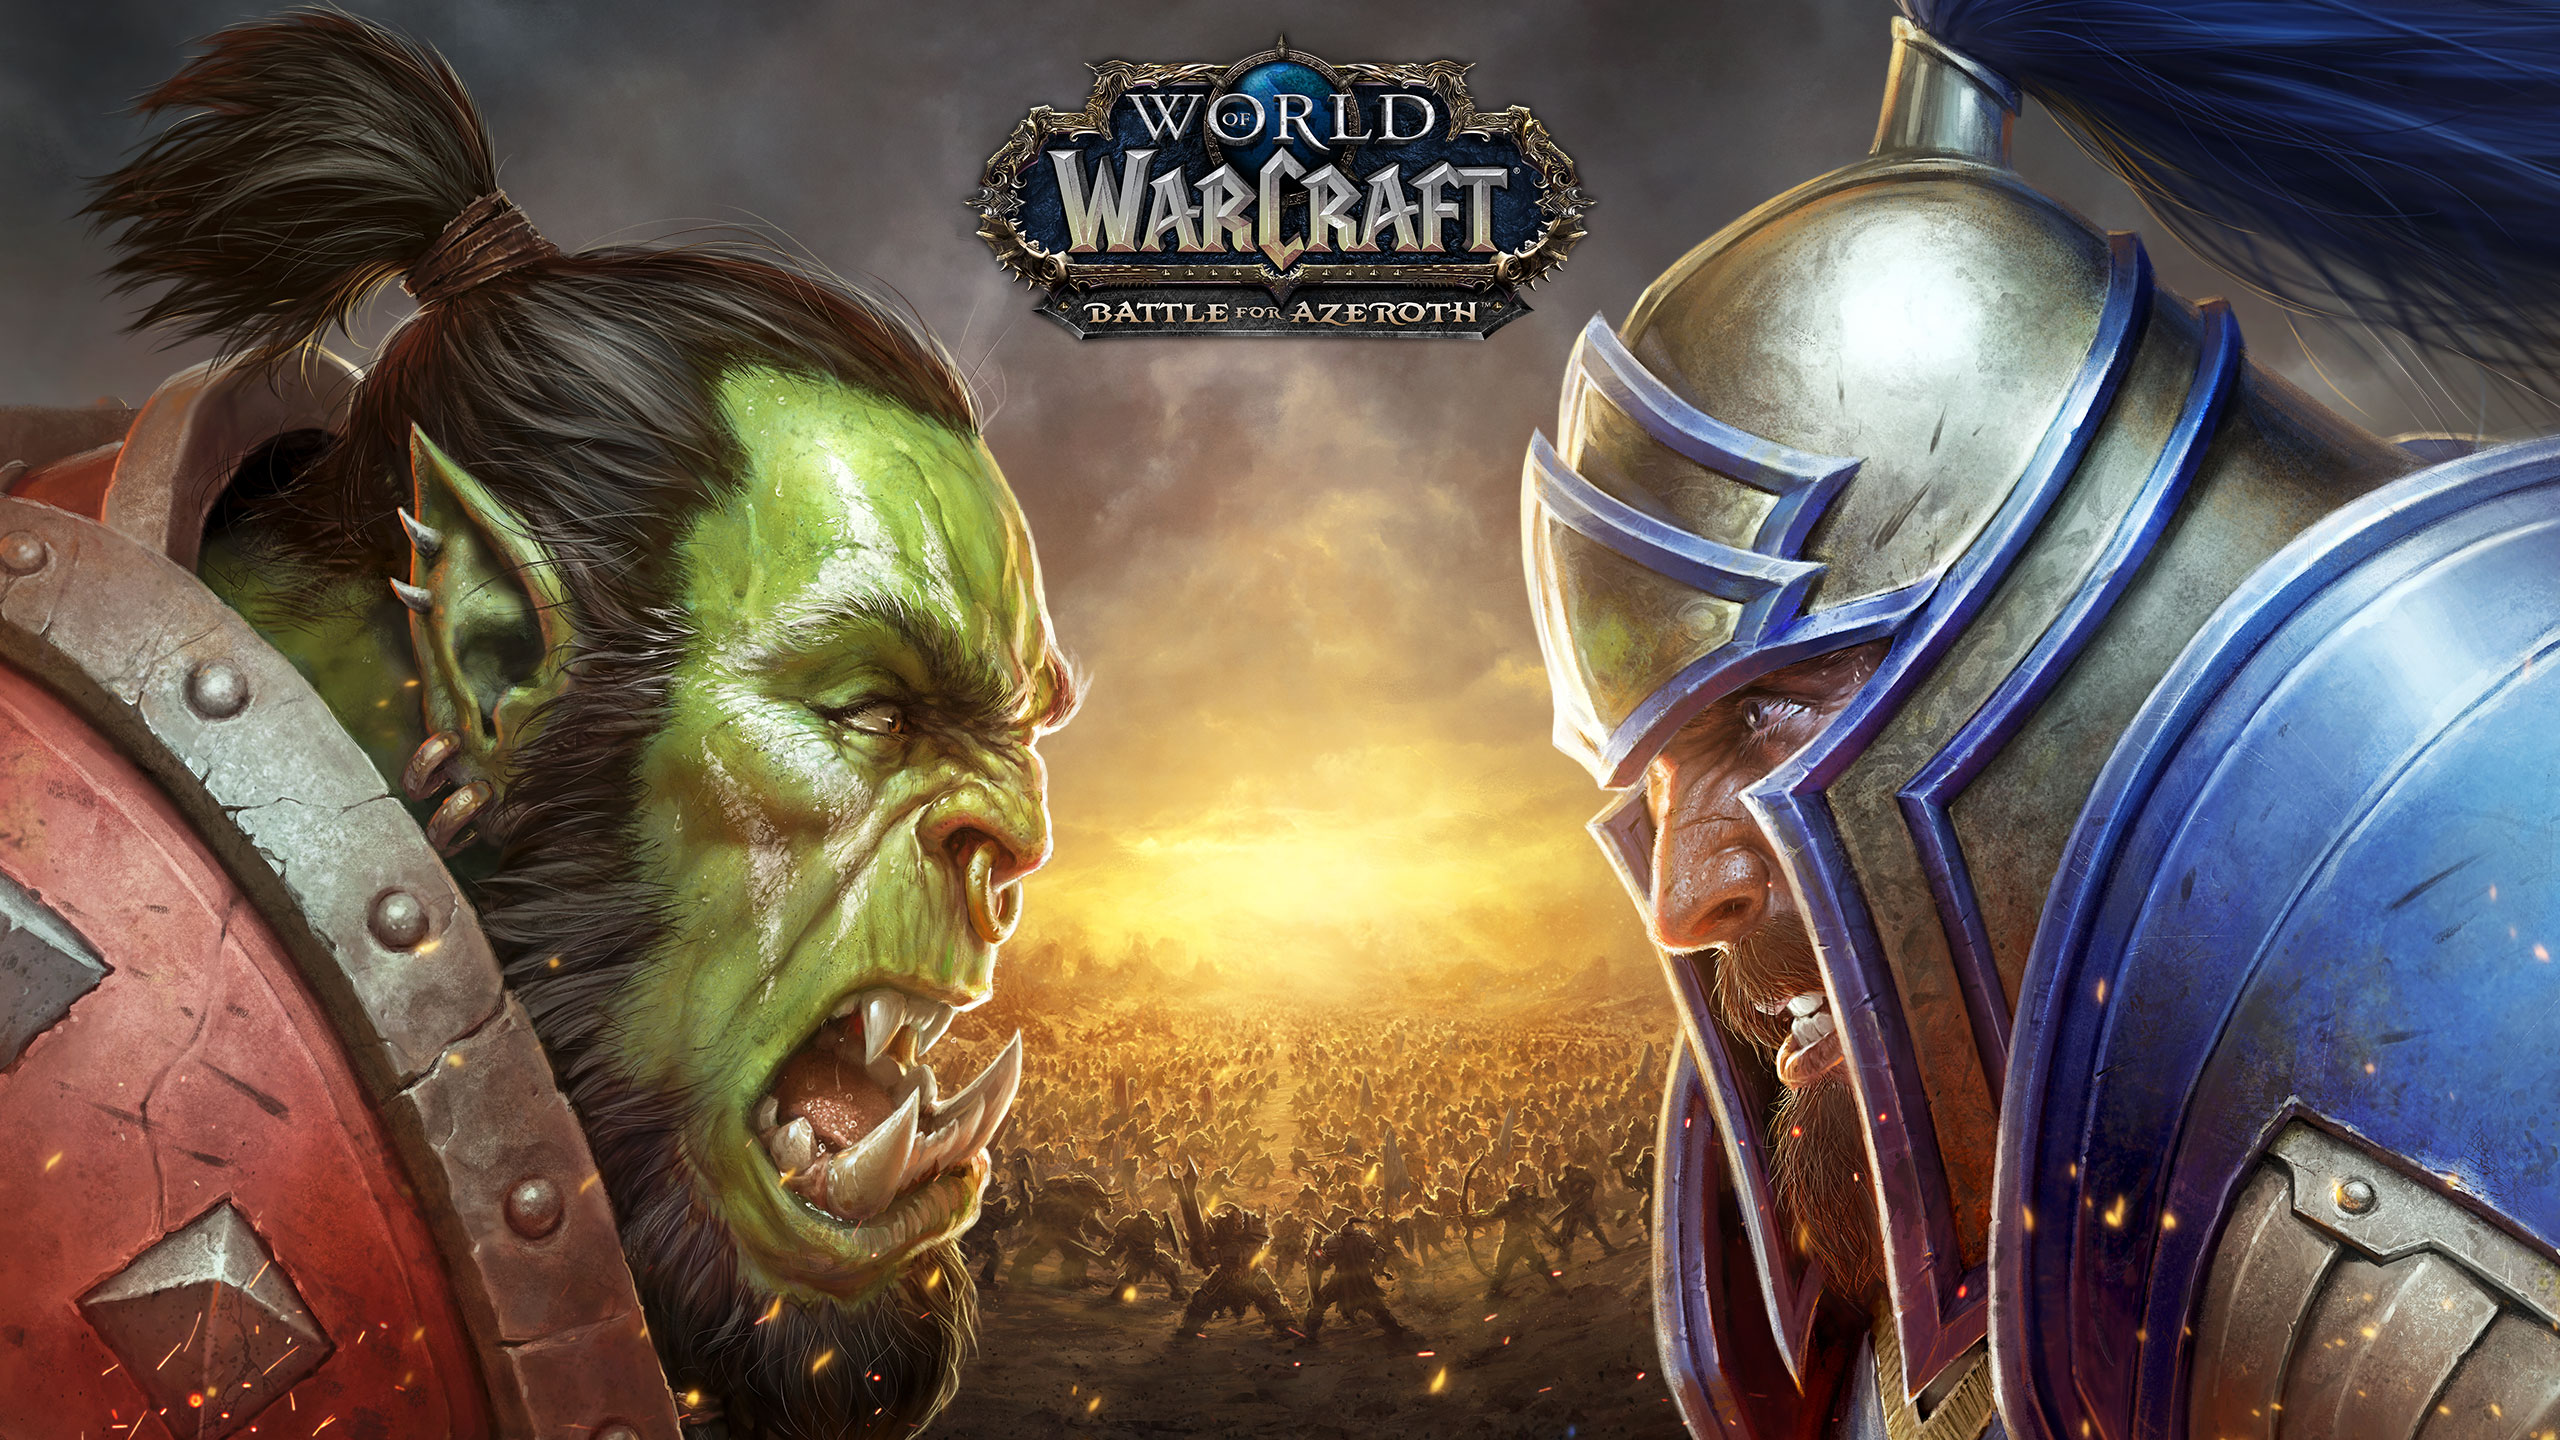 World Of Warcraft Battle For Azeroth 20186792110518 - World Of Warcraft Battle For Azeroth 2018 - World, Warcraft, Offensive, For, Battle, Azeroth, 2018